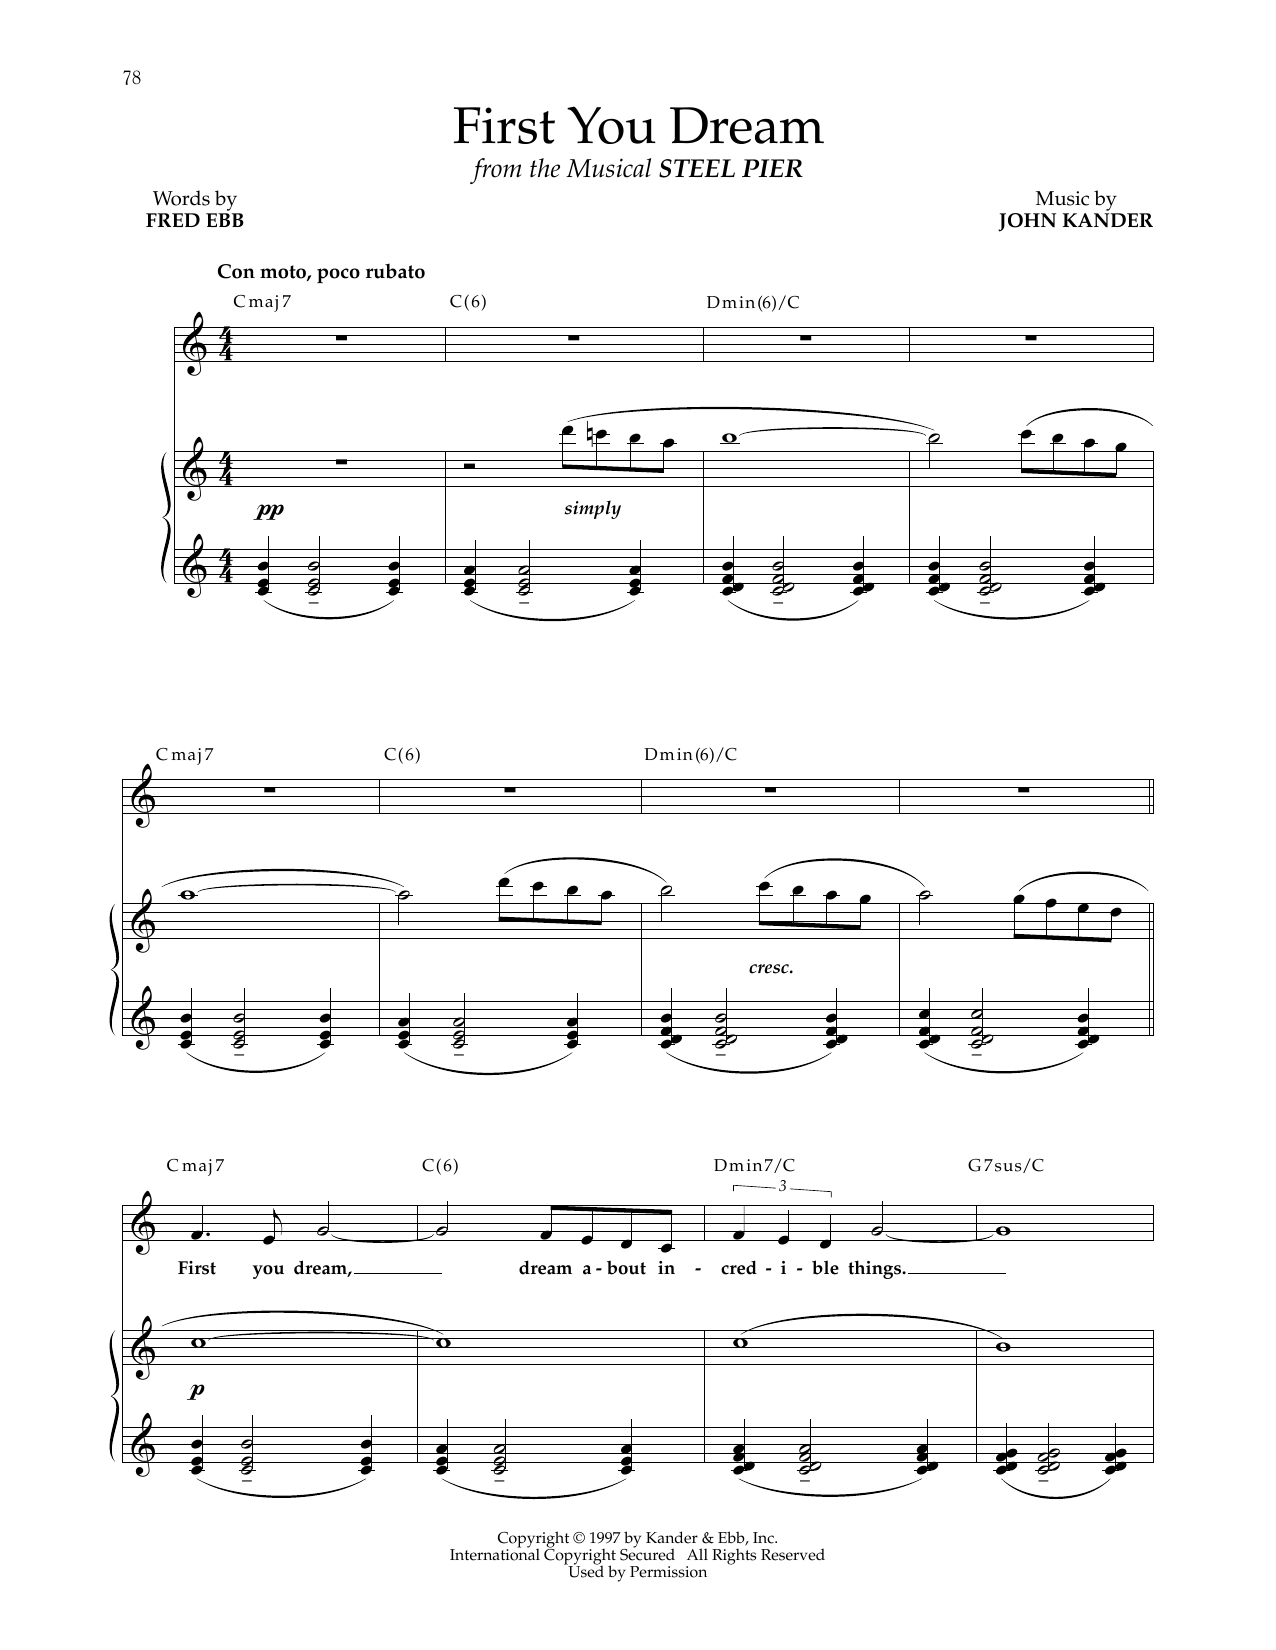 Kander & Ebb First You Dream (from Steel Pier) sheet music notes and chords. Download Printable PDF.